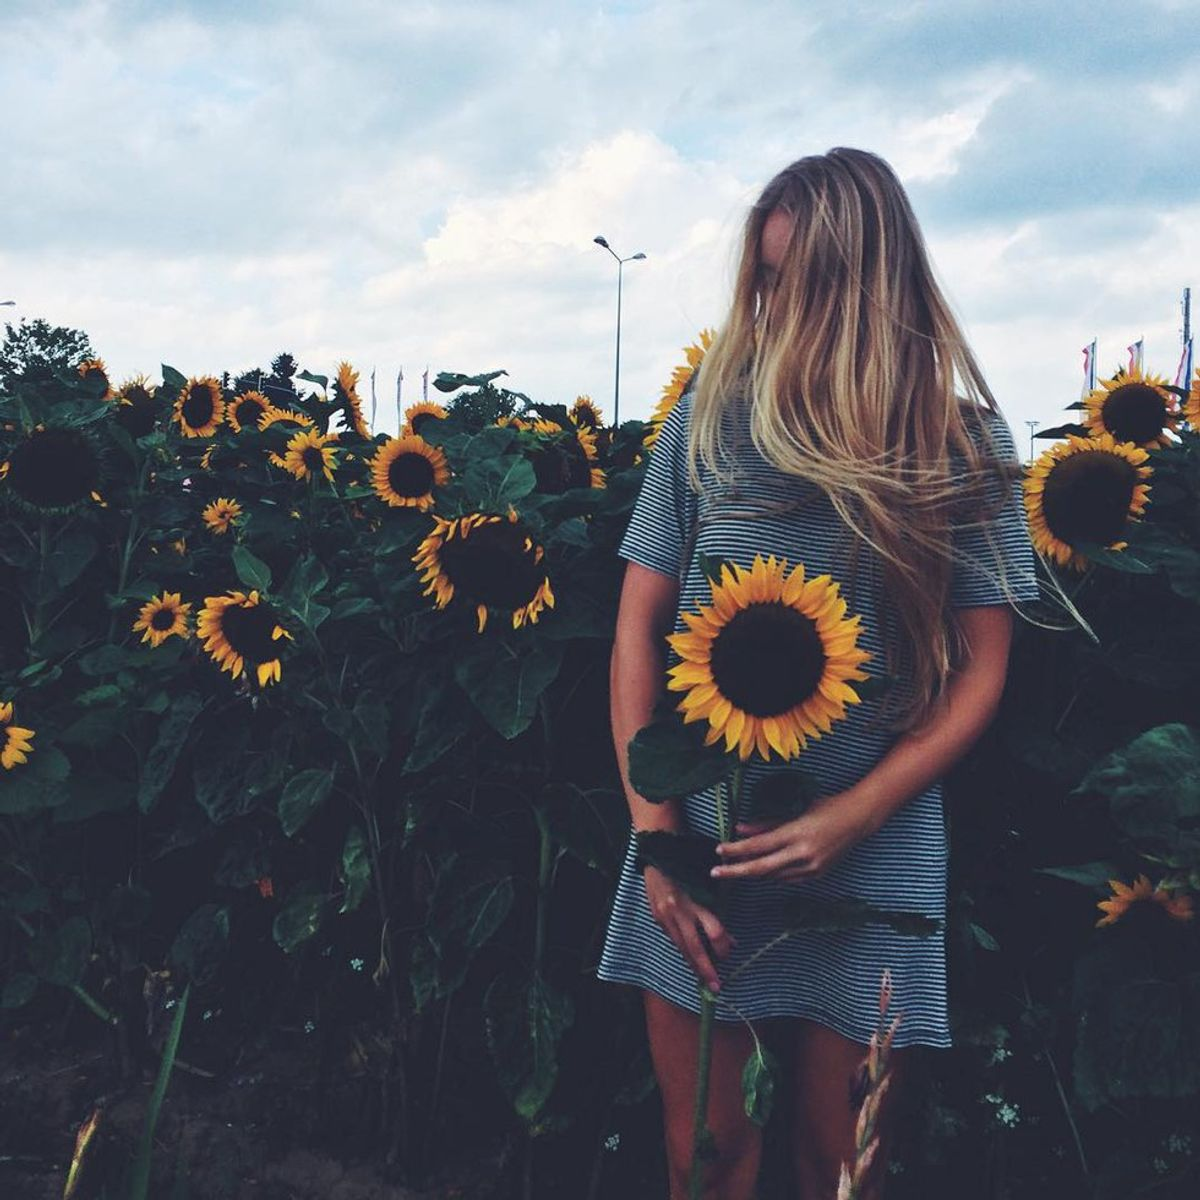 Are You A Human Or A Sunflower?